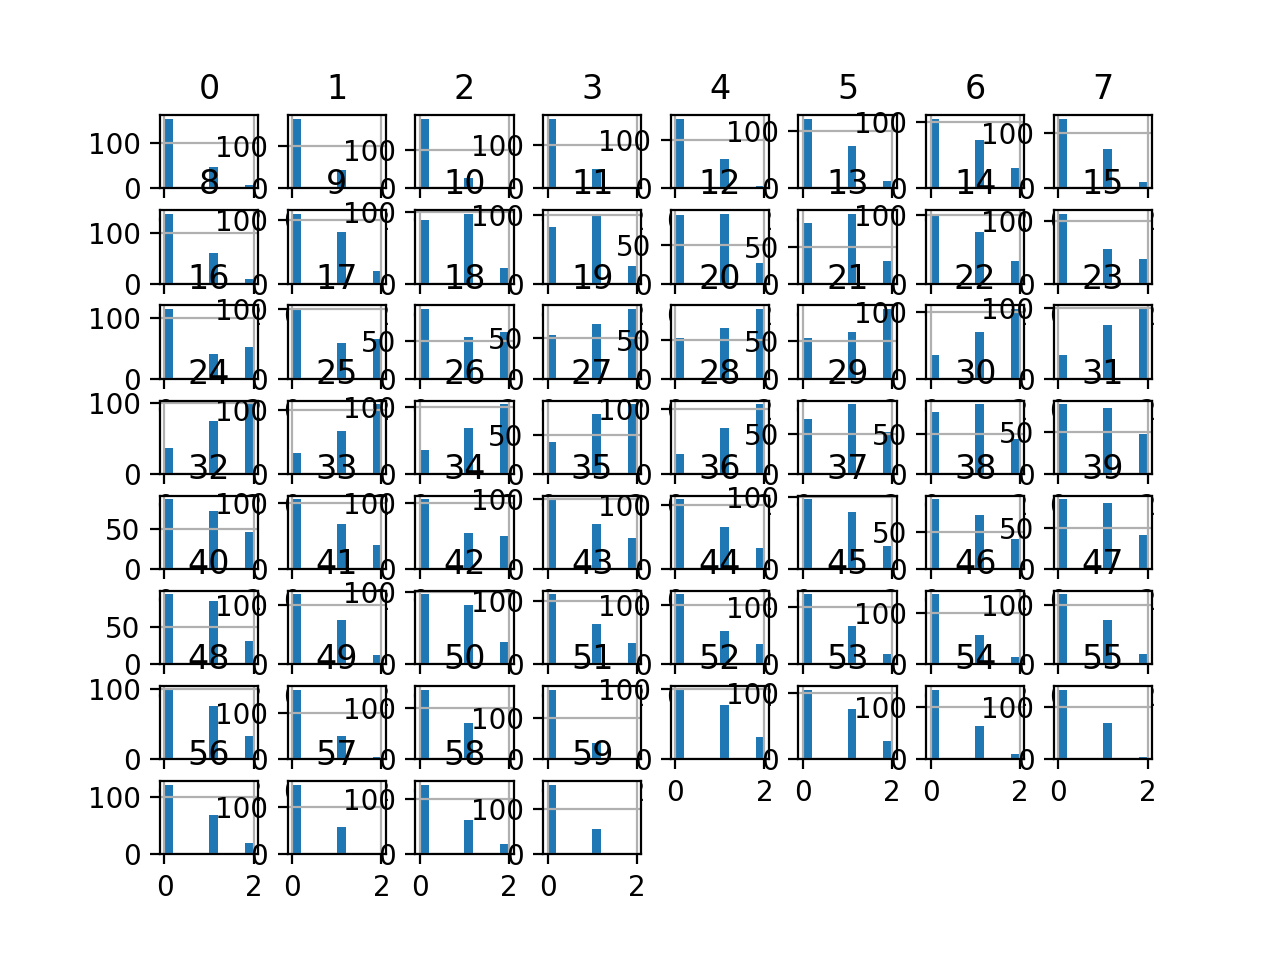 Histogram Plots of K-means Discretization Transformed Input Variables for the Sonar Dataset